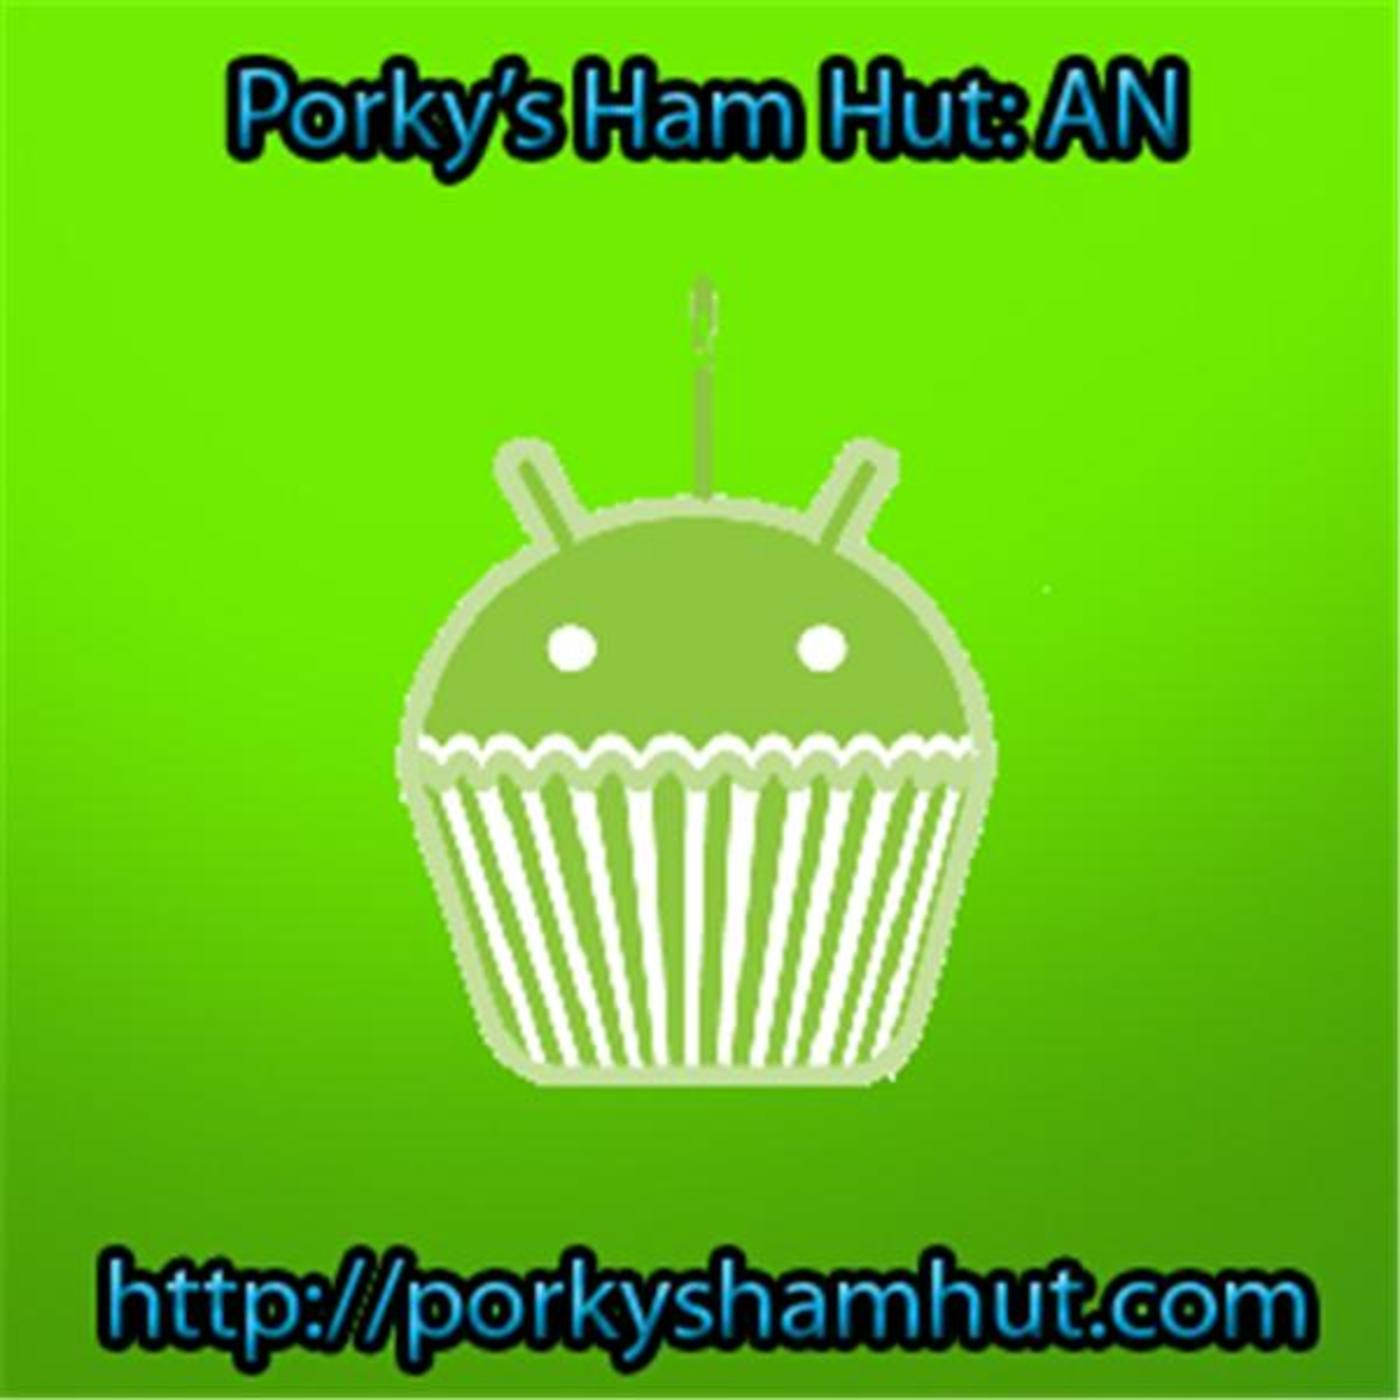 Porky's Ham Hut: AN (Android News)